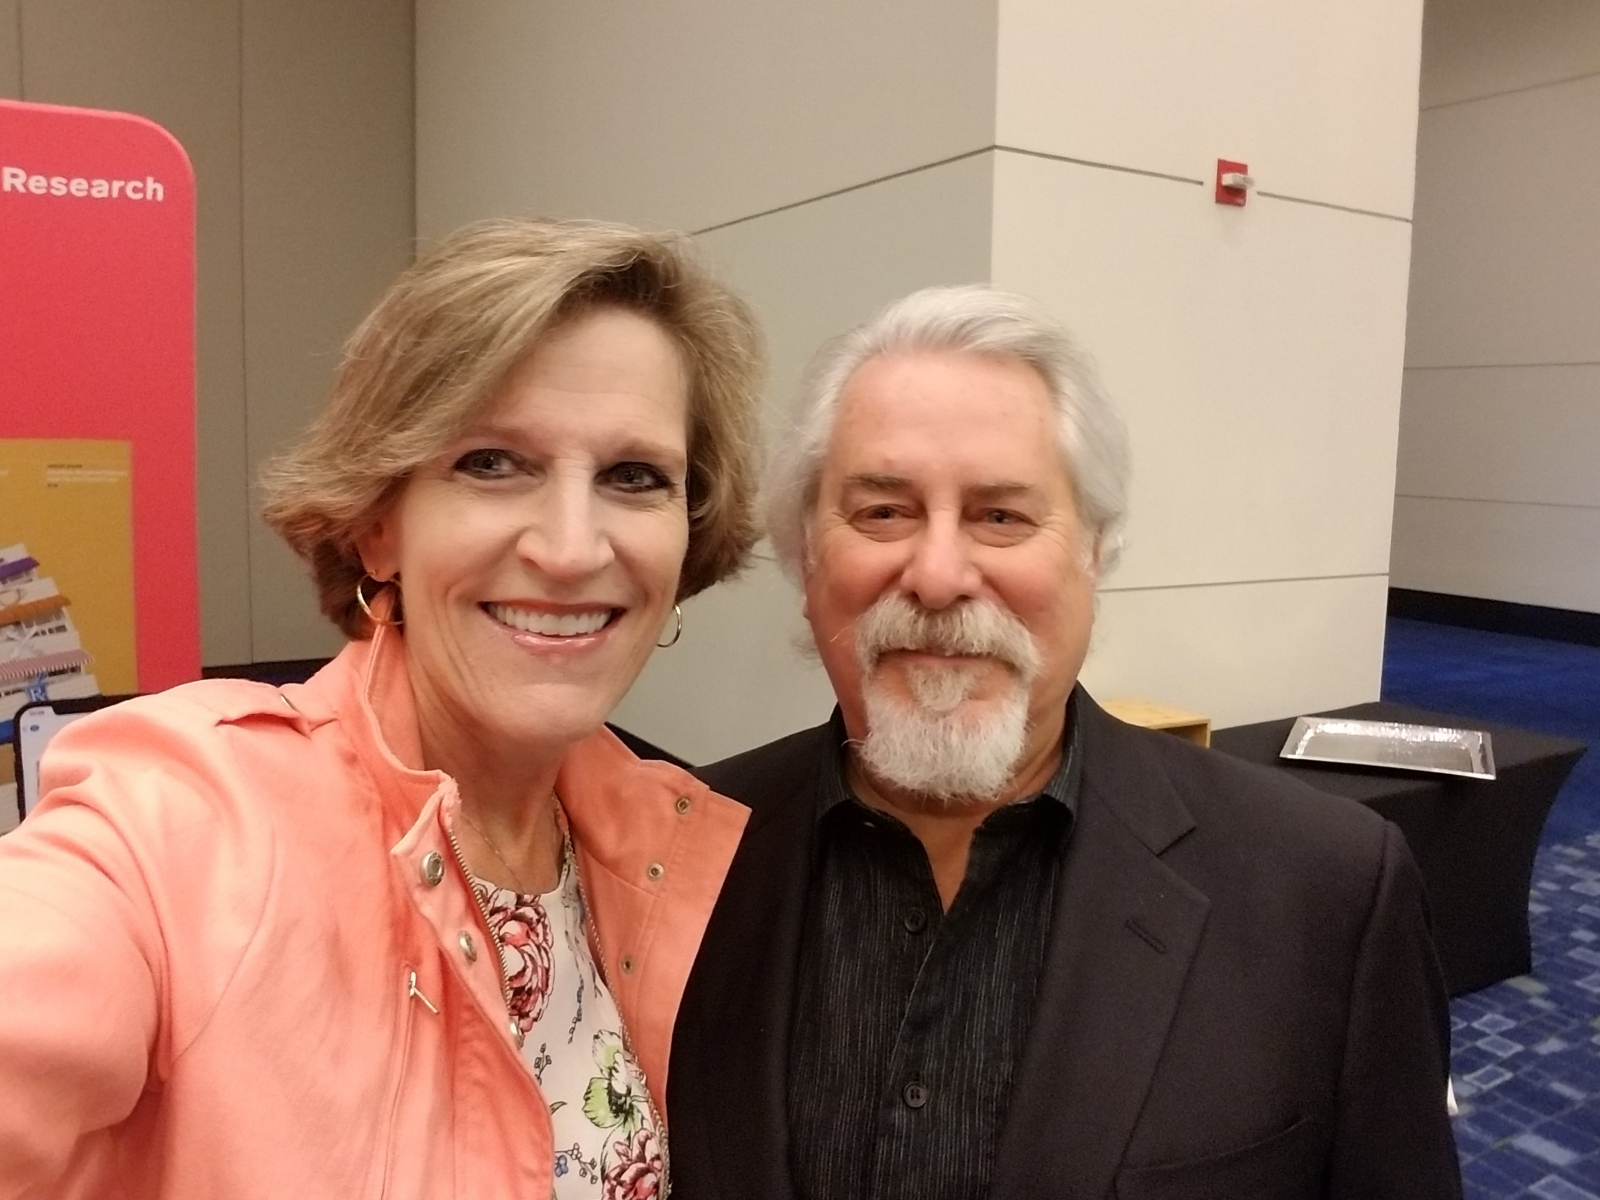 Cindy with Phil Lempert at the Retail Dietitain Business Alliance Retail Dietitian Exchange, May 2019